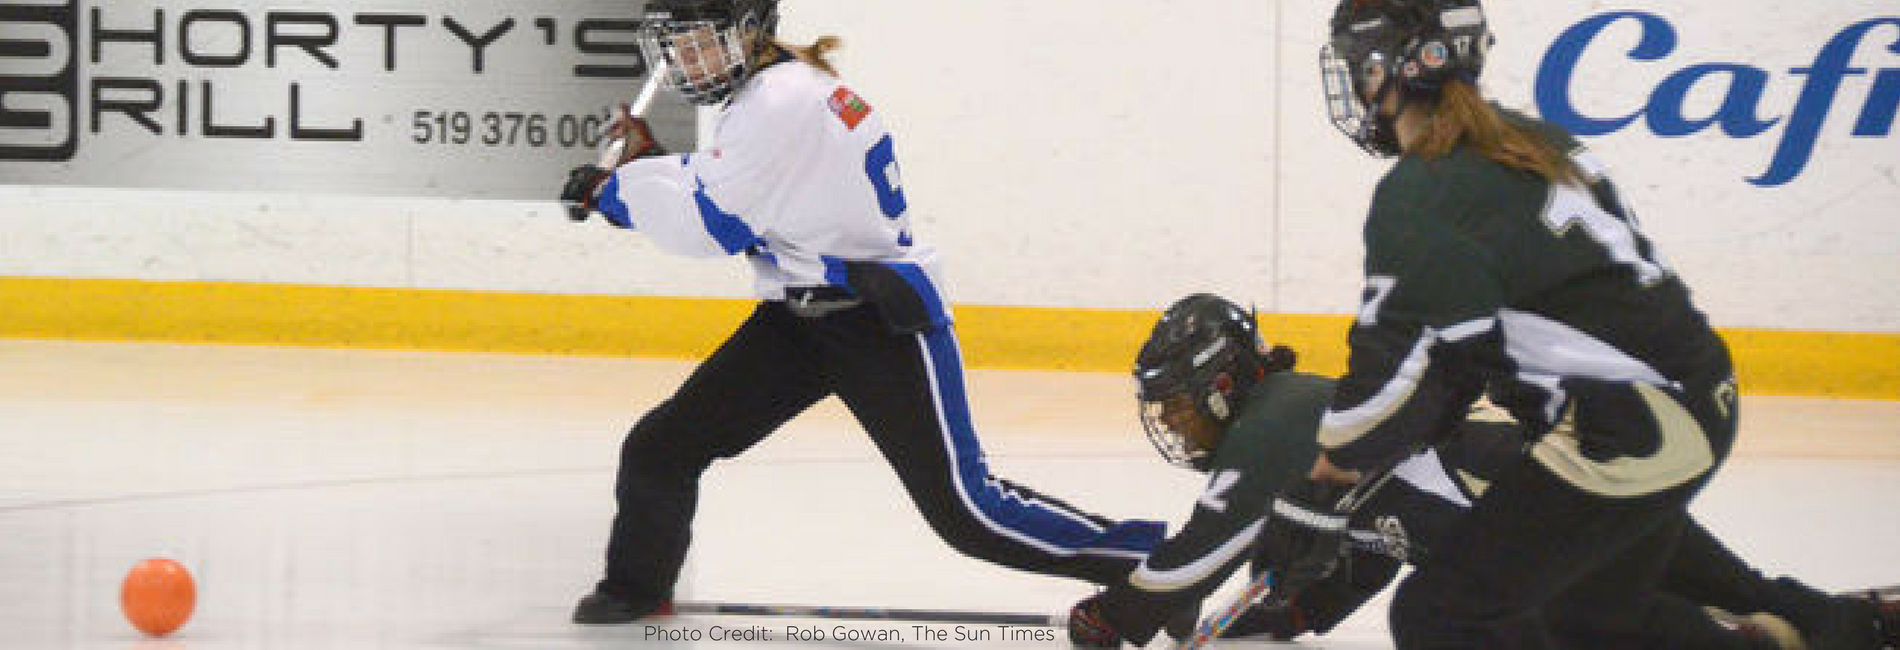 Standard swscd   broomball  1b   activity banner image    1900x650